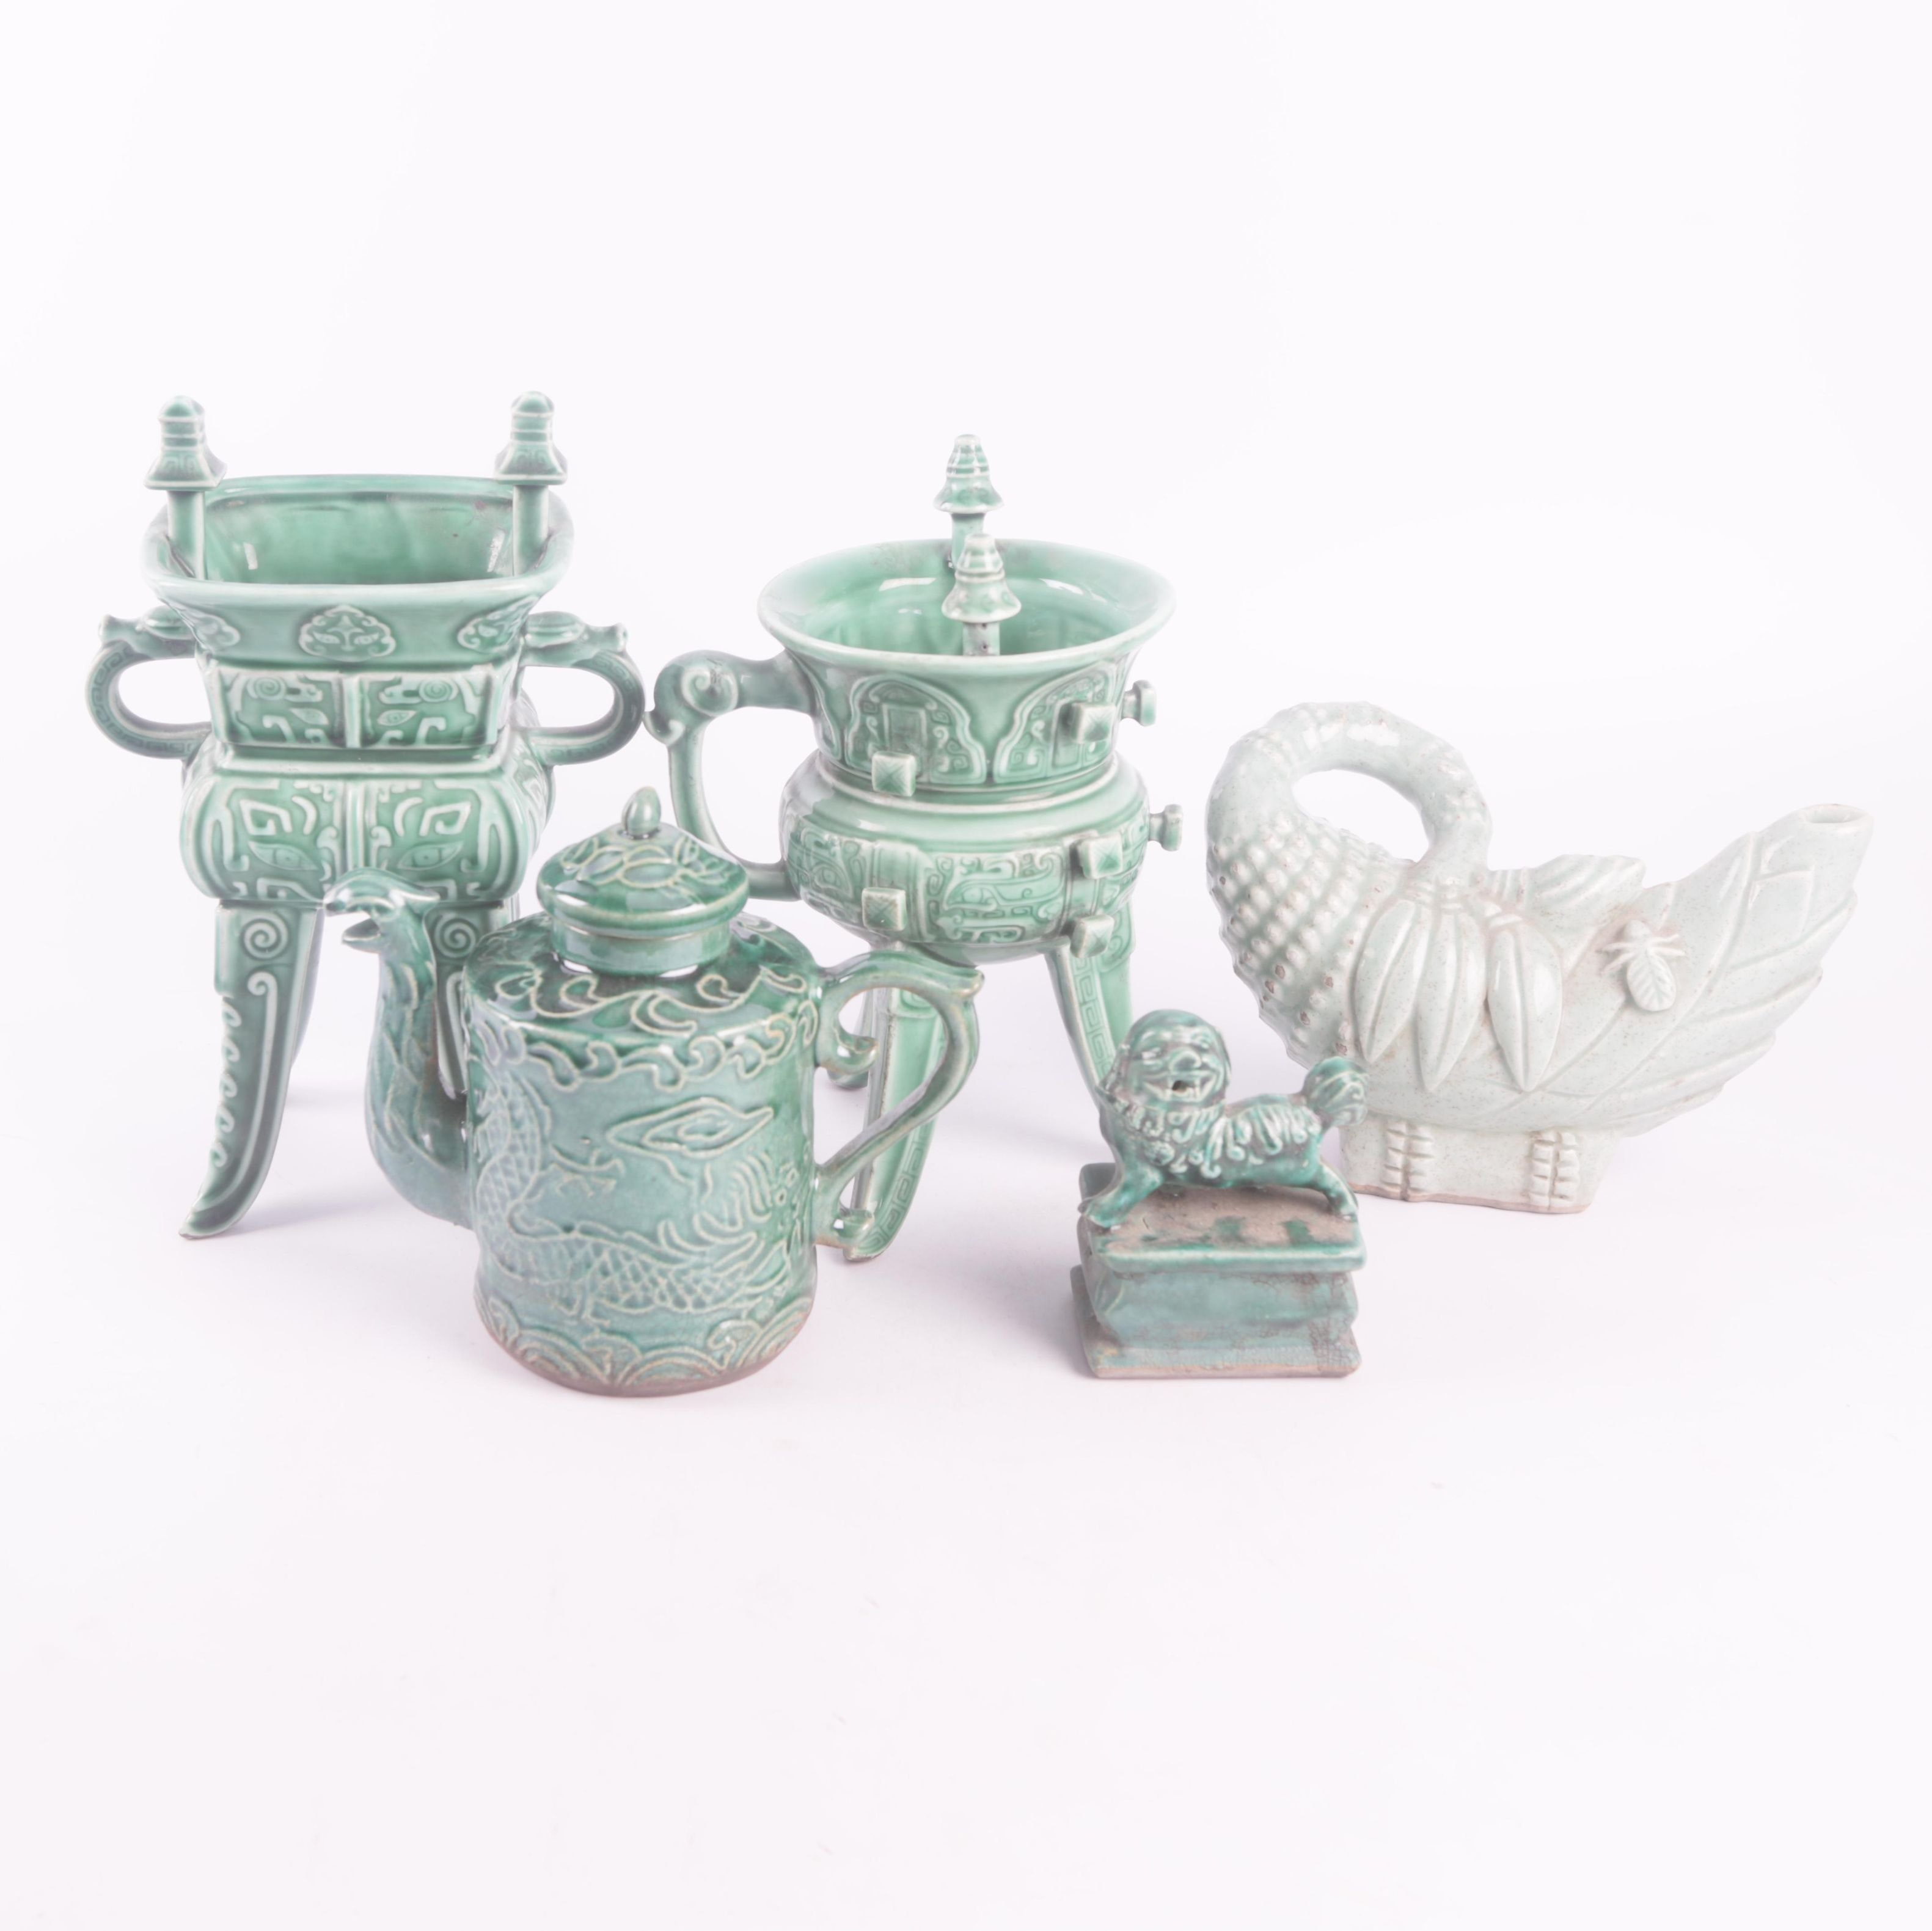 Chinese Footed Jue Cups, Teapot, and Guardian Lion Water Dropper